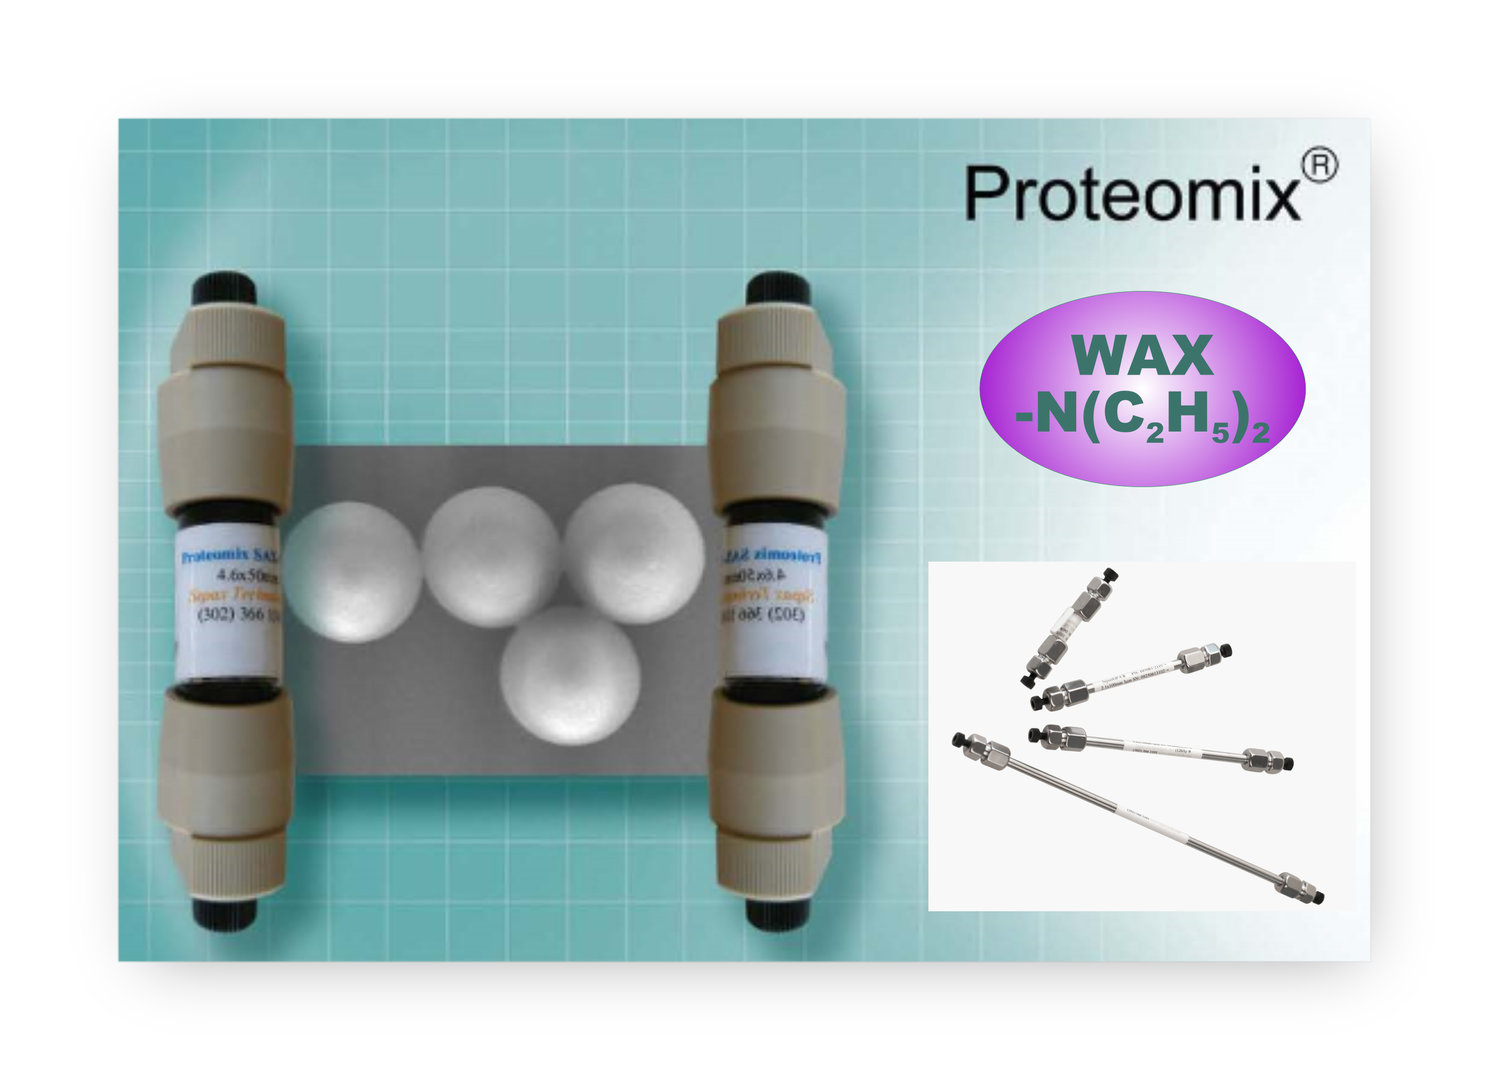 Sepax Proteomix WAX, NP1.7, Guard cartridge